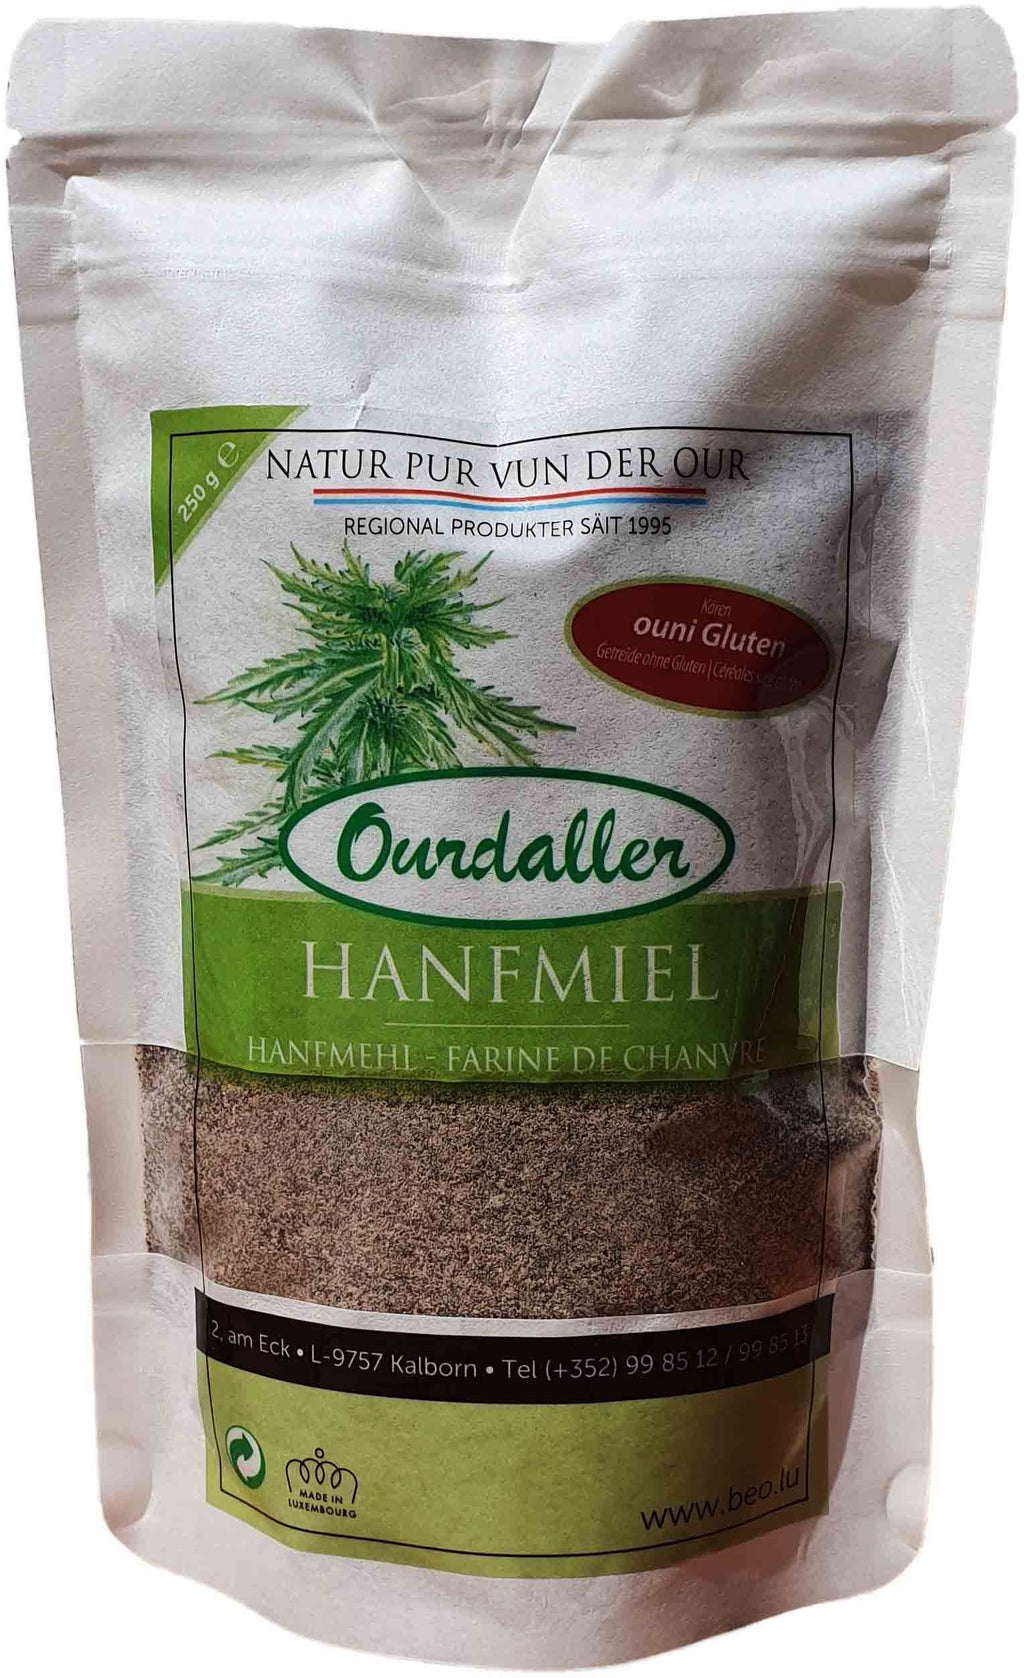 Ourdaller_Cannad'Our_Hanf-Mehl_hanfmiel_farine-de-chanvre_Luxembourg_Organic